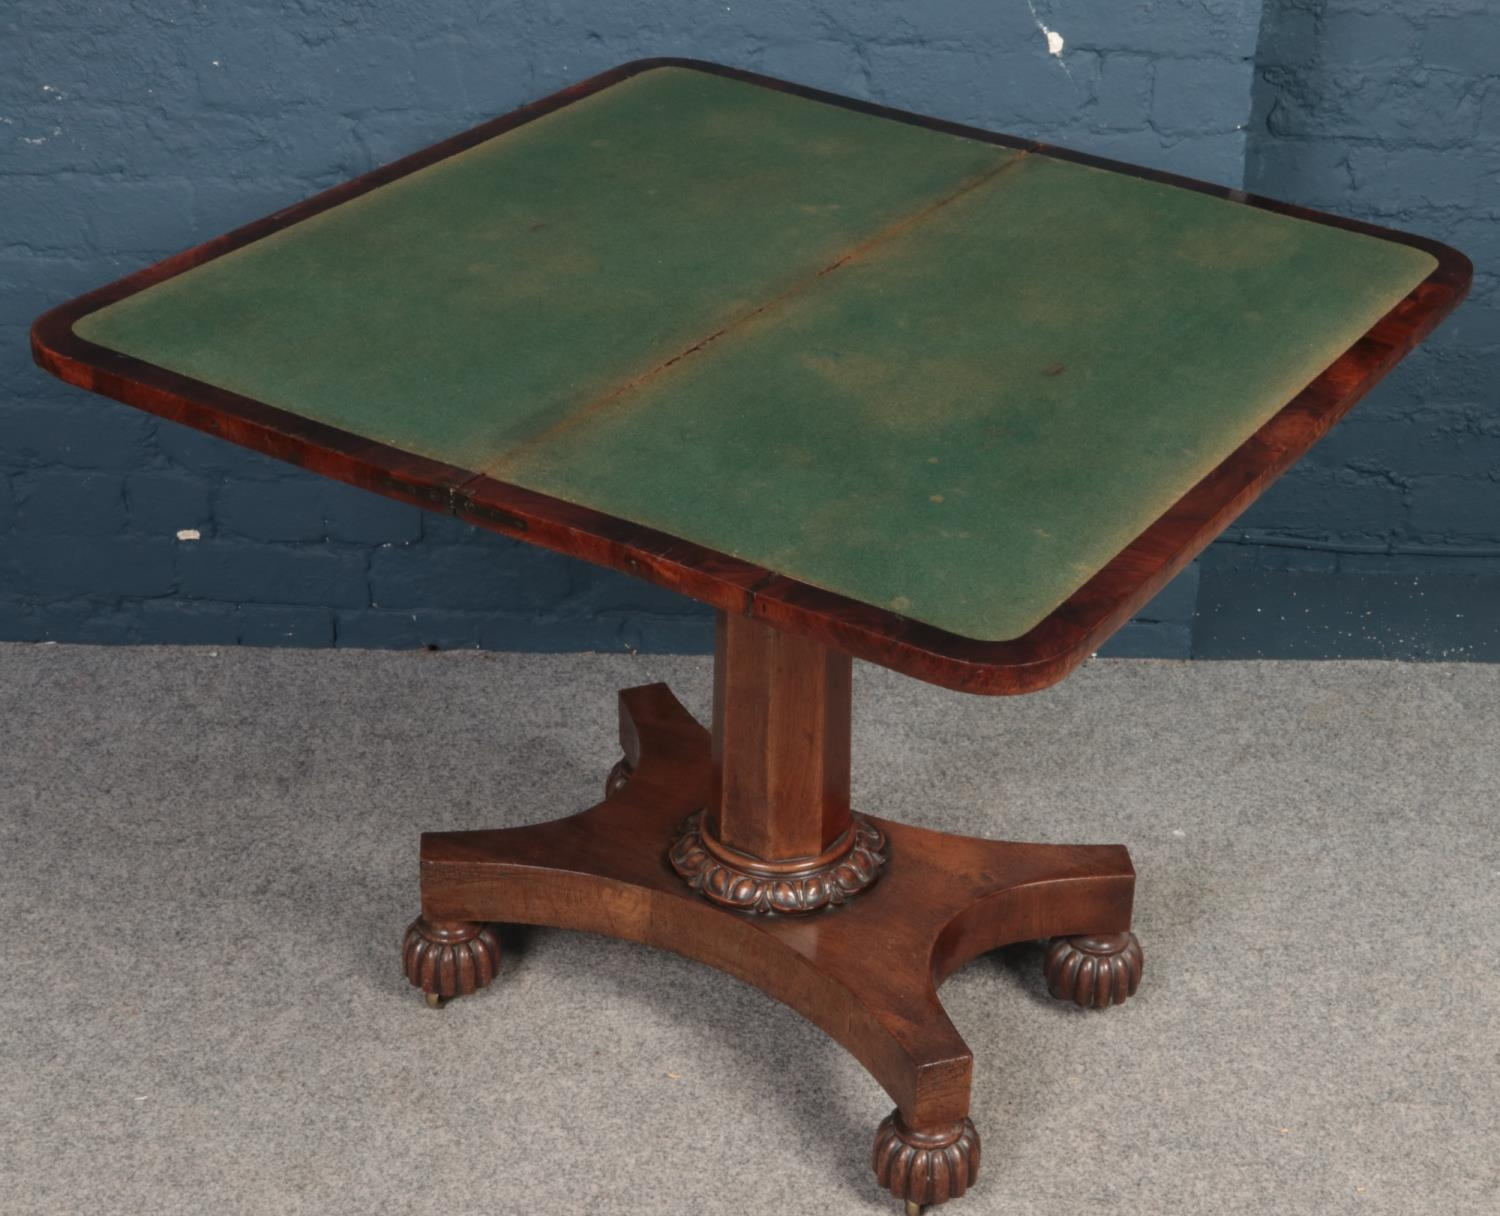 An early Victorian mahogany fold over card table. - Image 2 of 2